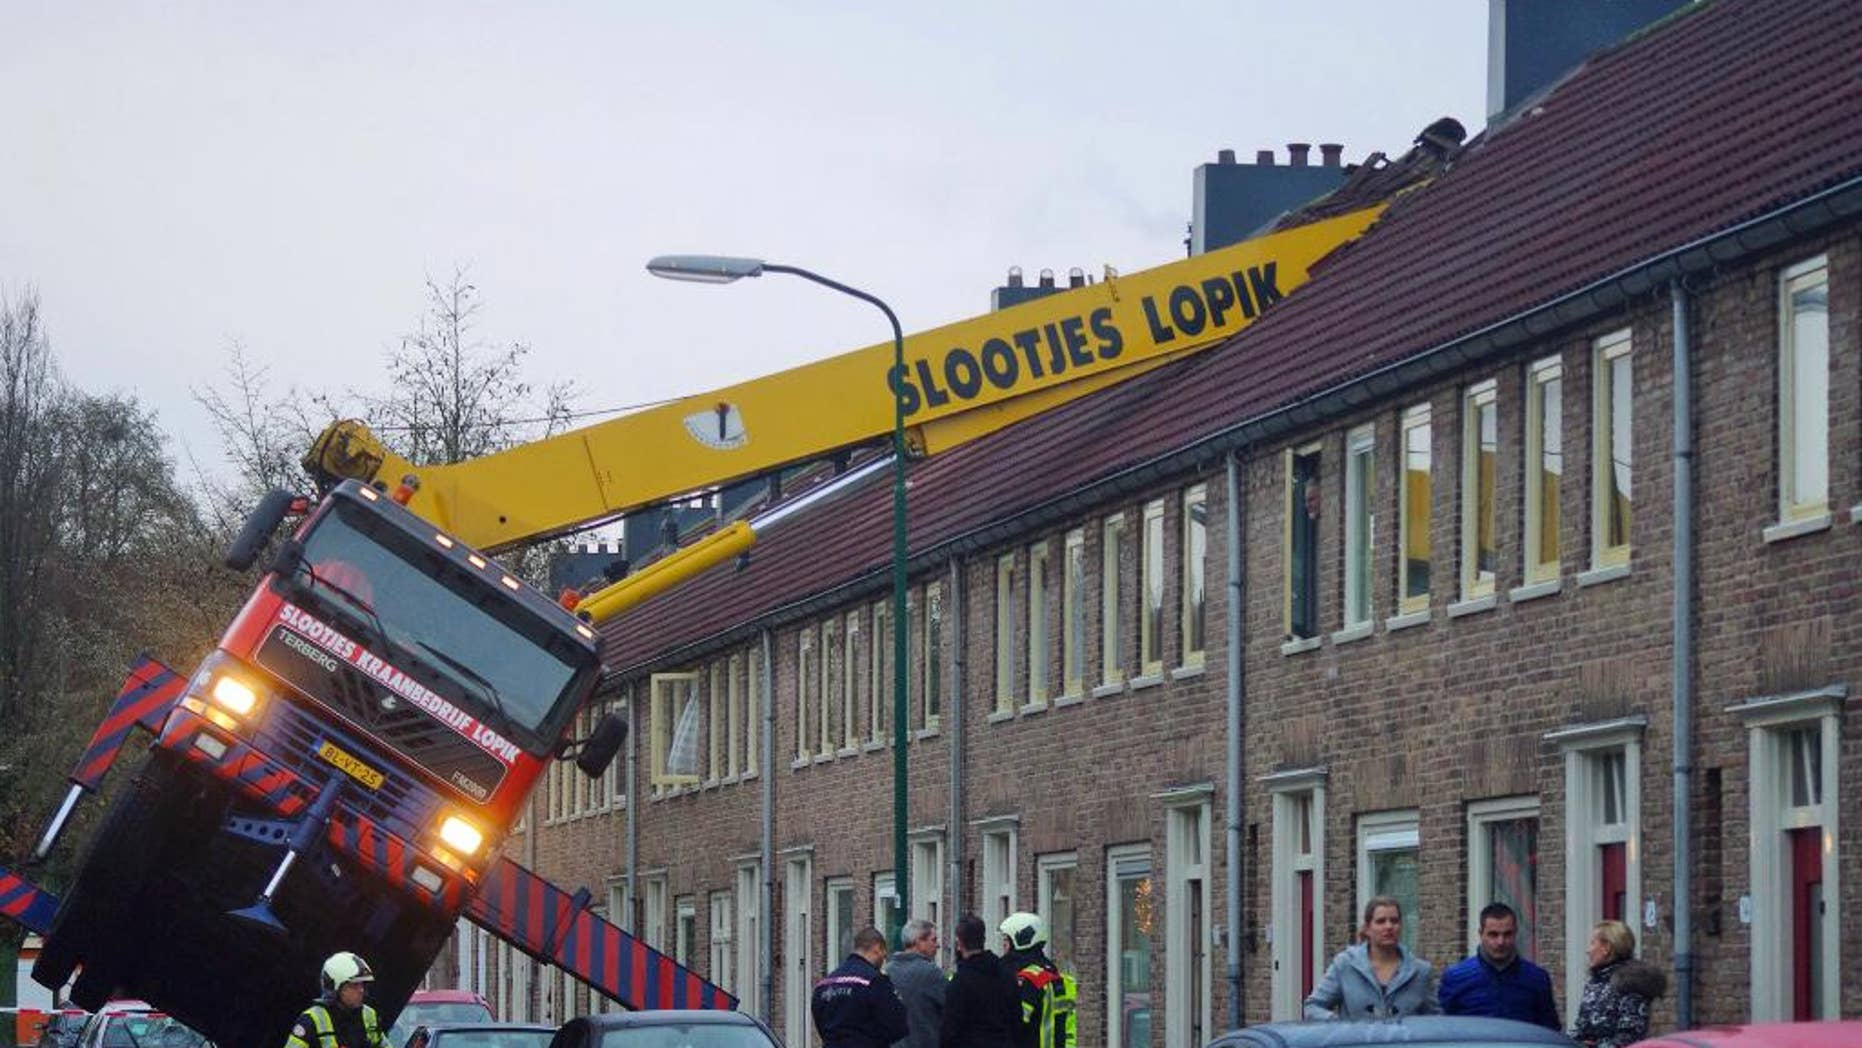 A crane which crashed into the roof of a house is seen following an unusual marriage proposal by a man who wished to be lifted in front of the bedroom window of his girlfriend to ask for her hand in marriage, in the central Dutch town of IJsselstein, Saturday Dec. 13, 2014. No people were injured in the accident, the groom-to-be jumped to safety without injuries and his girlfriend accepted to marry him, according to local Dutch media. (AP Photo/AS Media) NETHERLANDS OUT, MANDATORY CREDIT